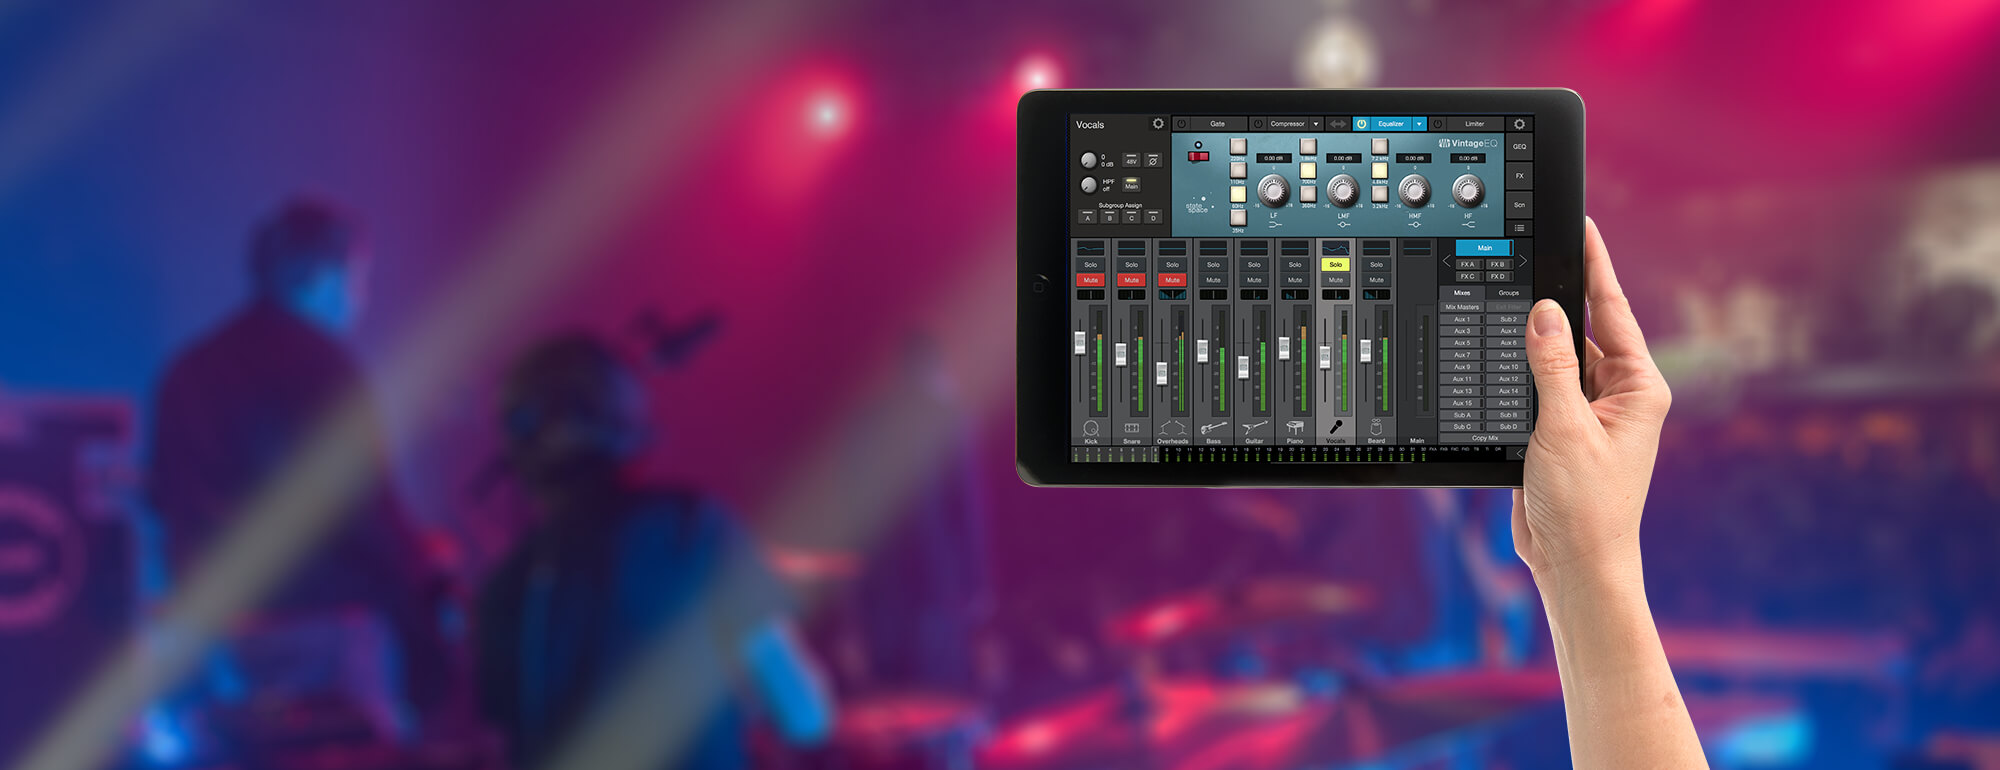 Studiolive 32 Presonus Ipad Usb Wiring Diagram Adjust Monitor Mixes On Stage Move Around The Room To Dial In Your Mix Or Add An Accessory Shelf And Use Mobile Device As Second Screen For